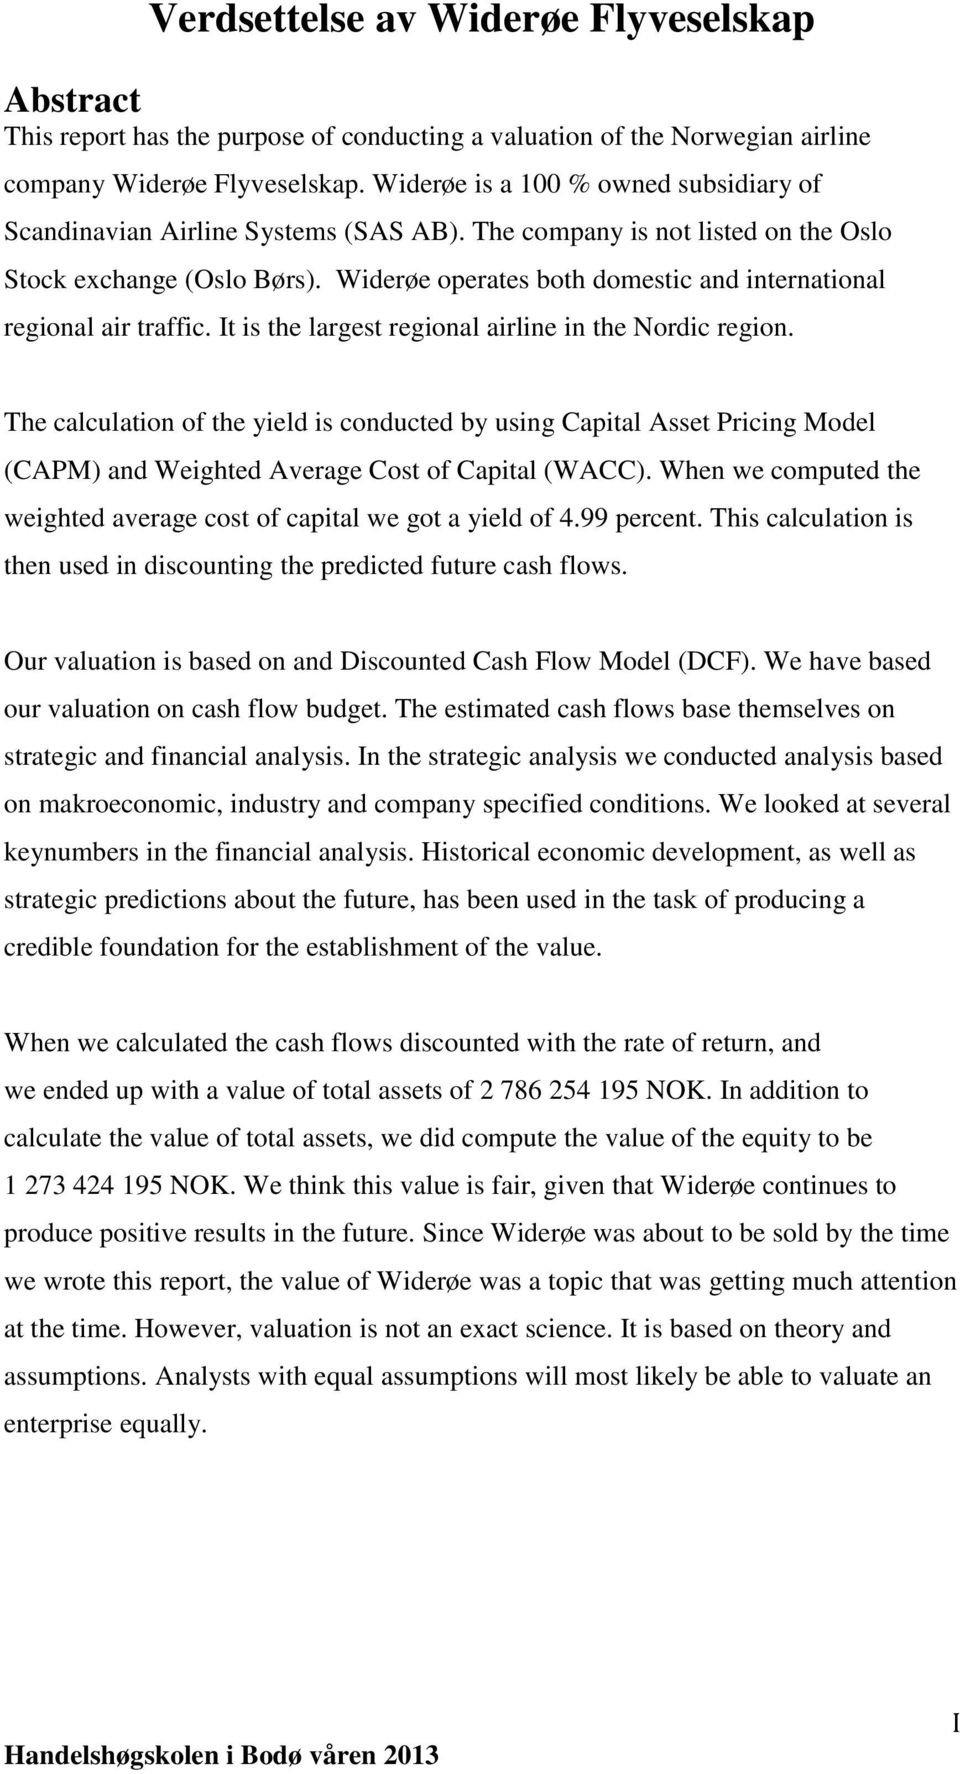 The calculation of the yield is conducted by using Capital Asset Pricing Model (CAPM) and Weighted Average Cost of Capital (WACC).